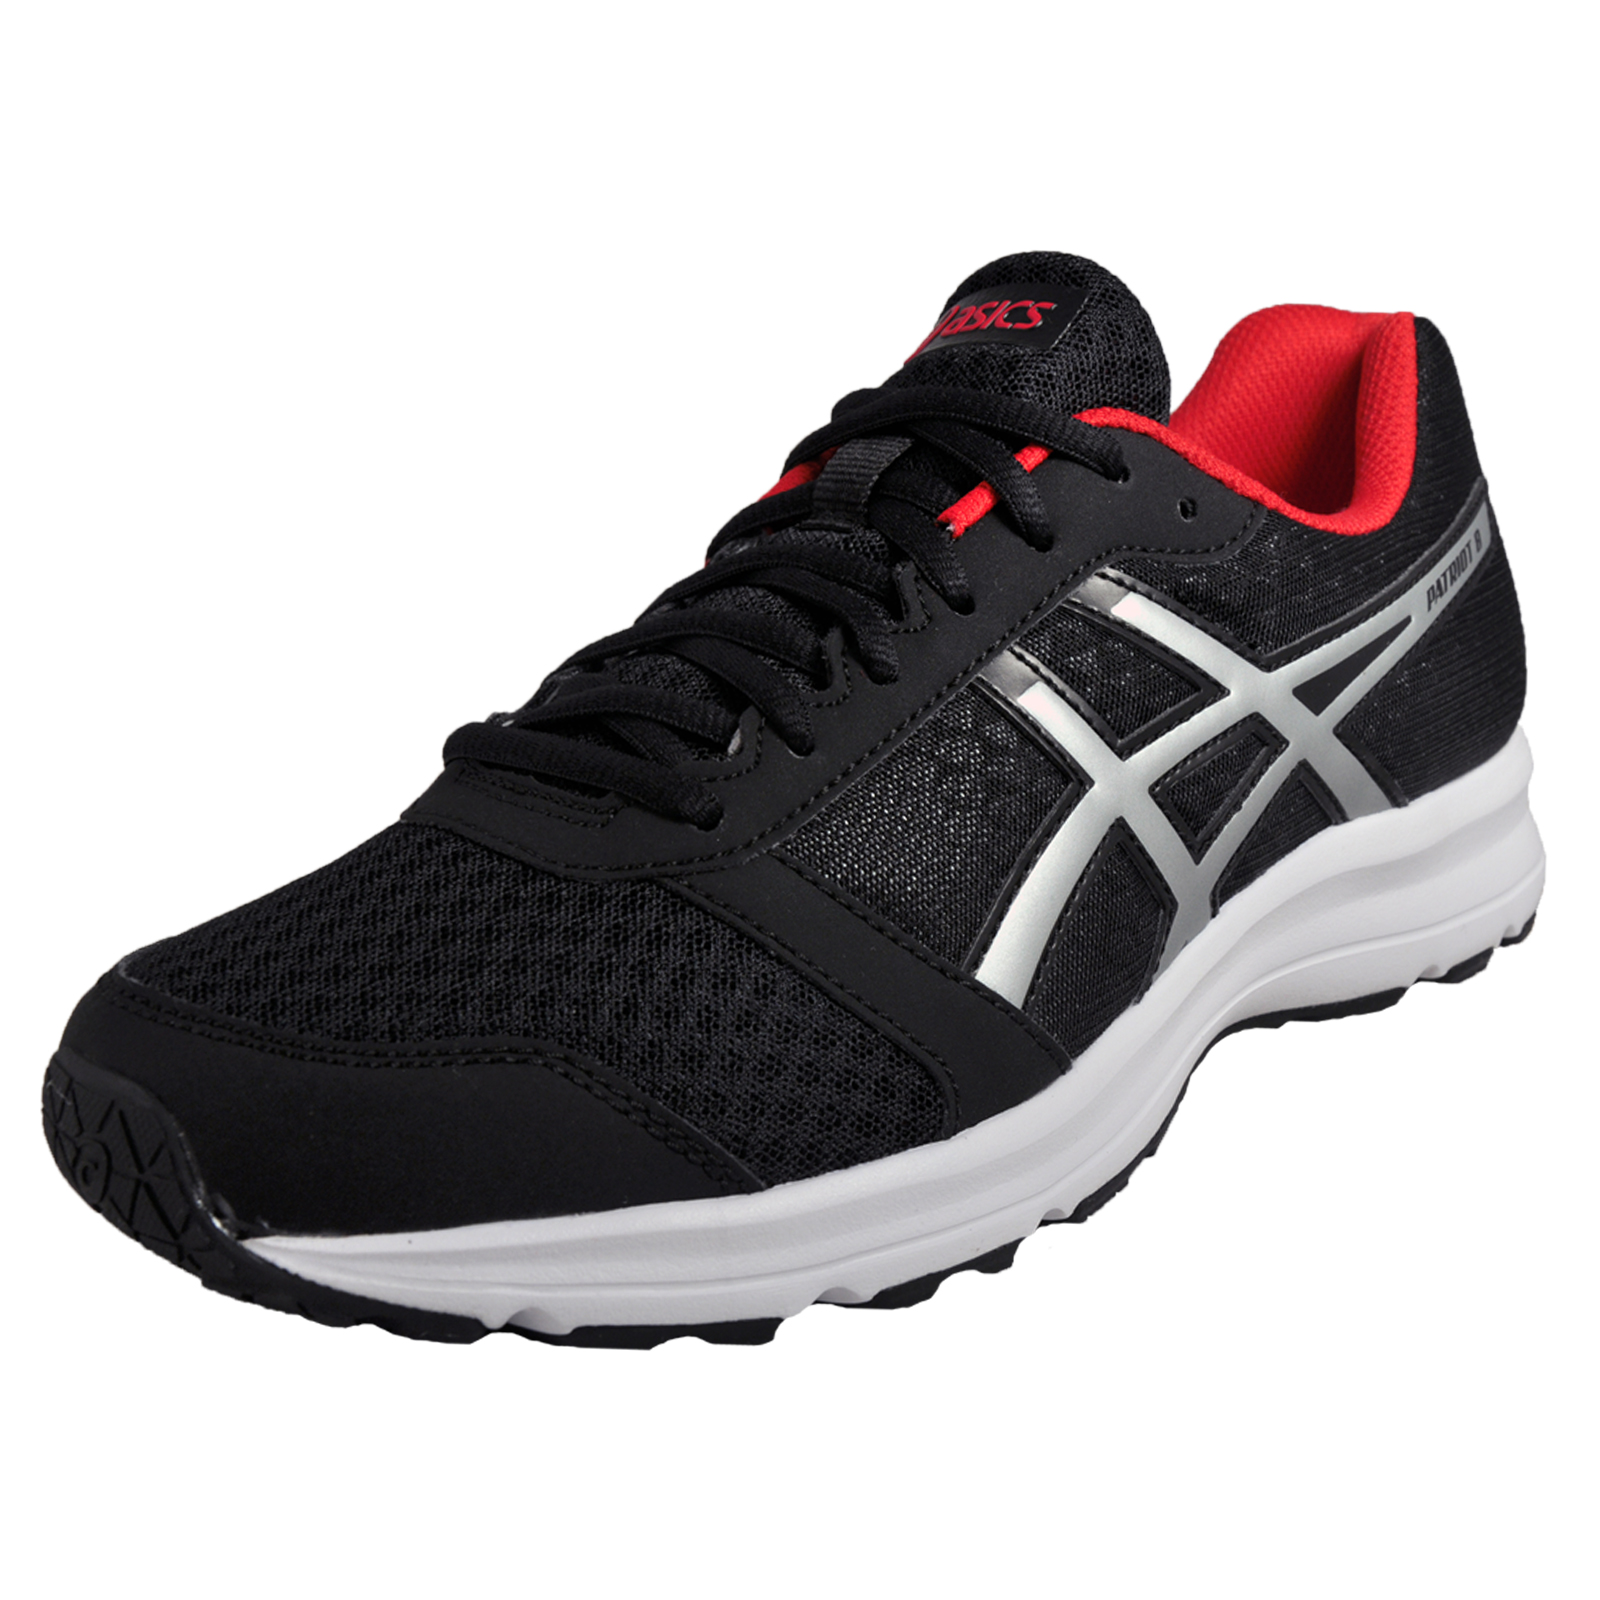 Asics Patriot 8 Mens Running Shoes Fitness Gym Workout